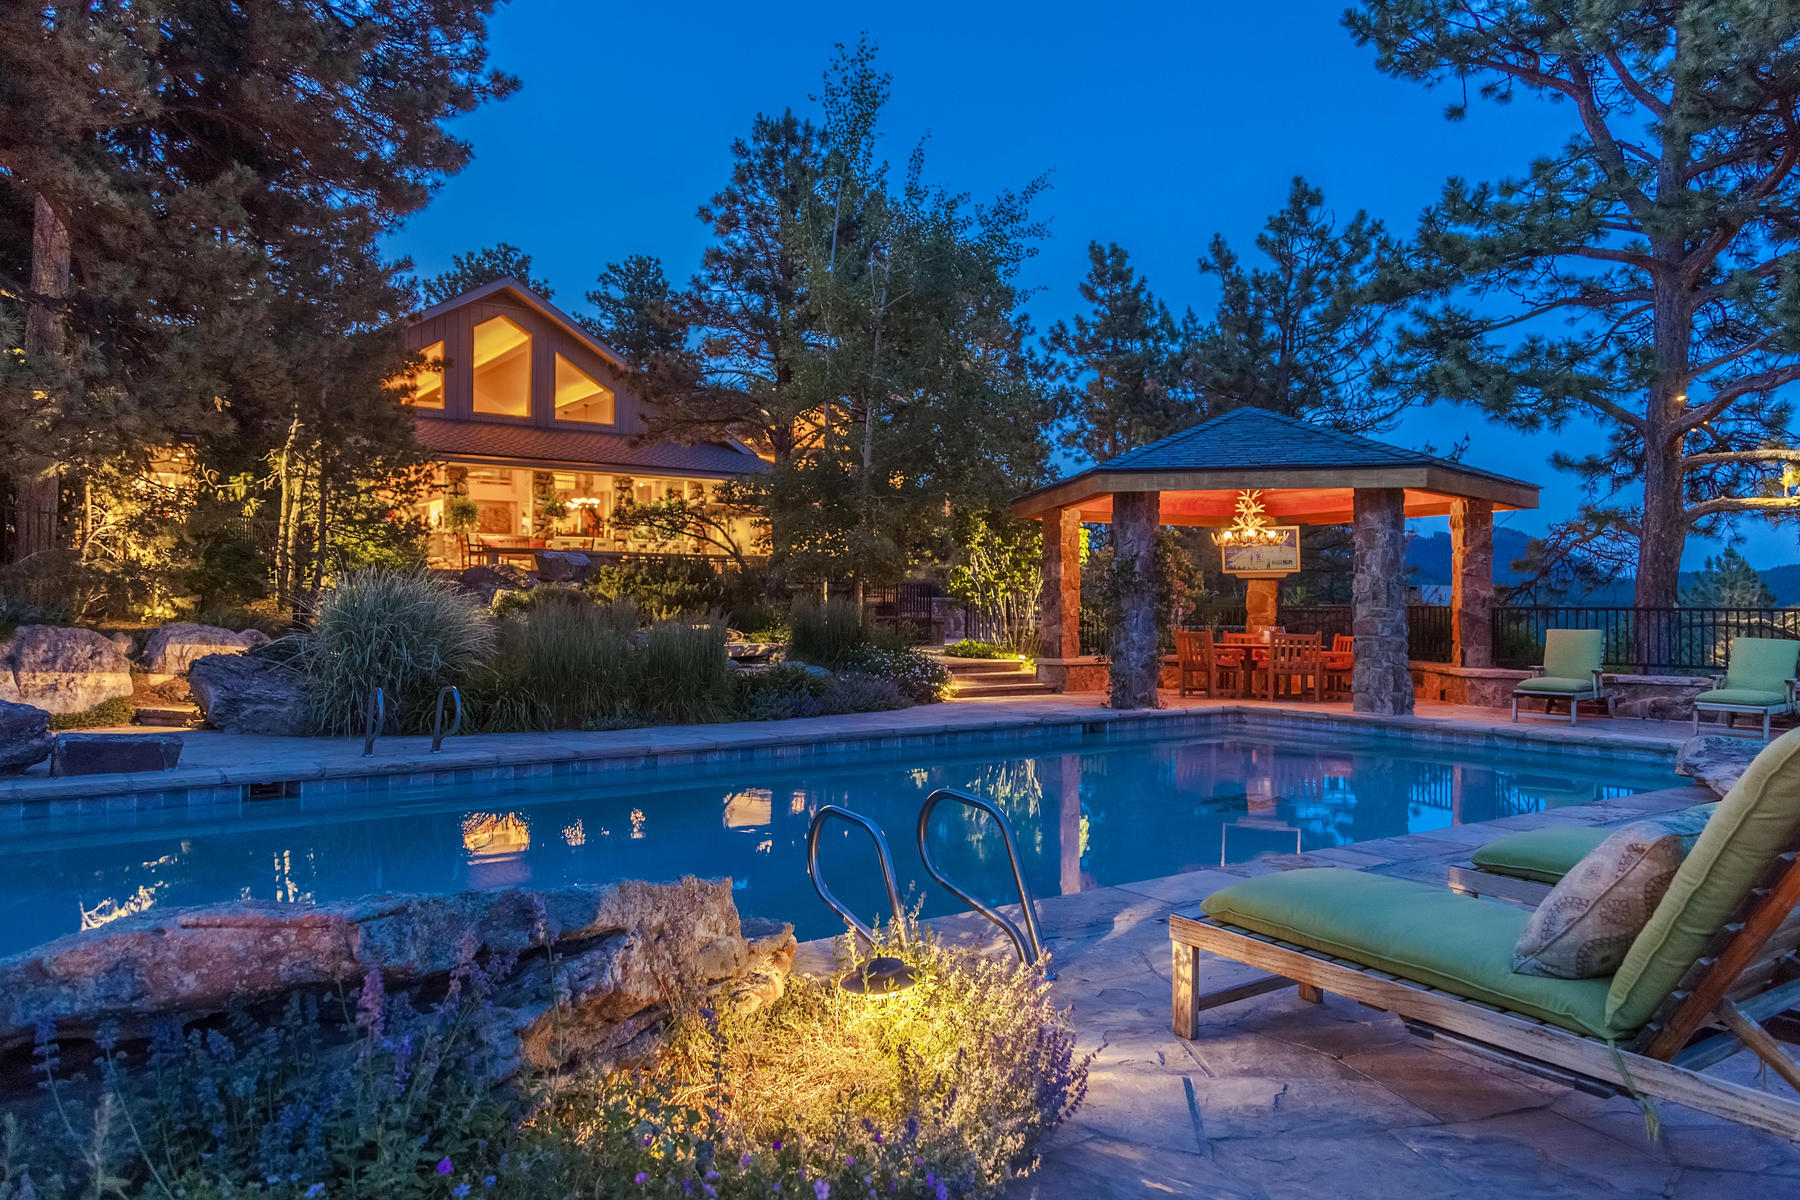 Single Family Home for Active at Tranquil Estate & Equestrian Property 7321 Flagstaff Rd Boulder, Colorado 80302 United States